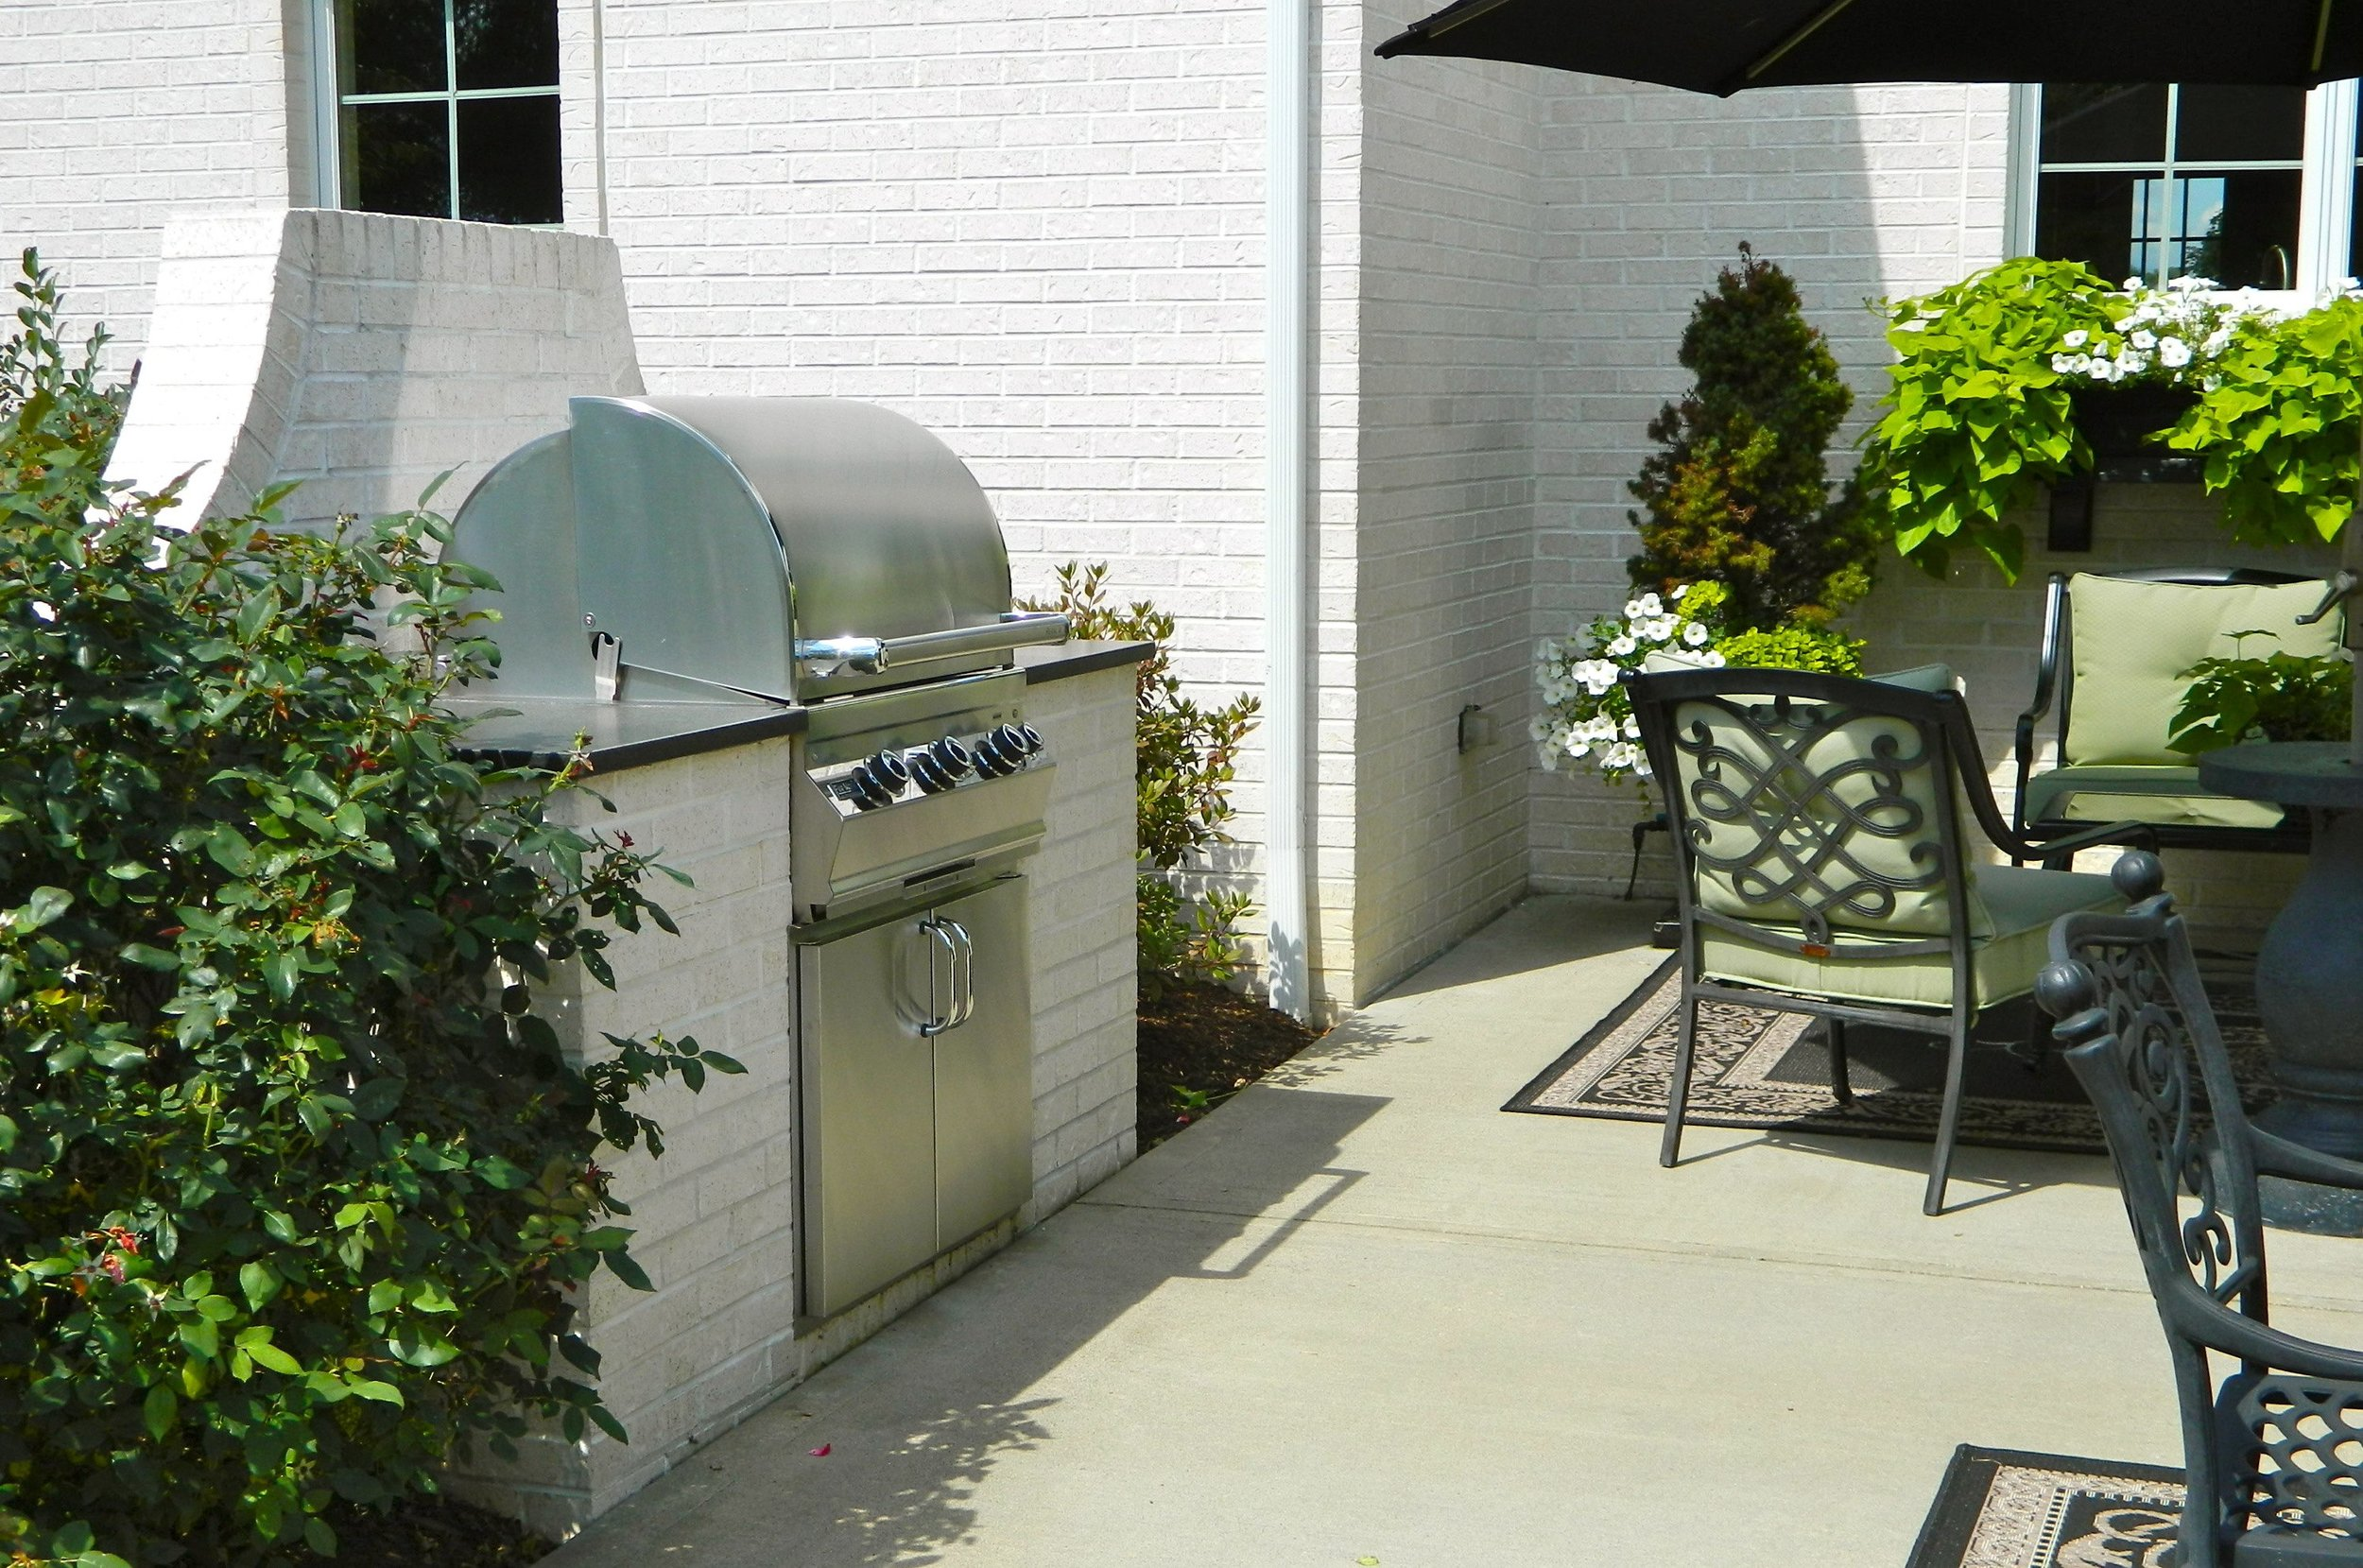 Landscape Design project in Mars, PA by The Blackwood GroupLandscape Design project in Mars, PA by The Blackwood Group